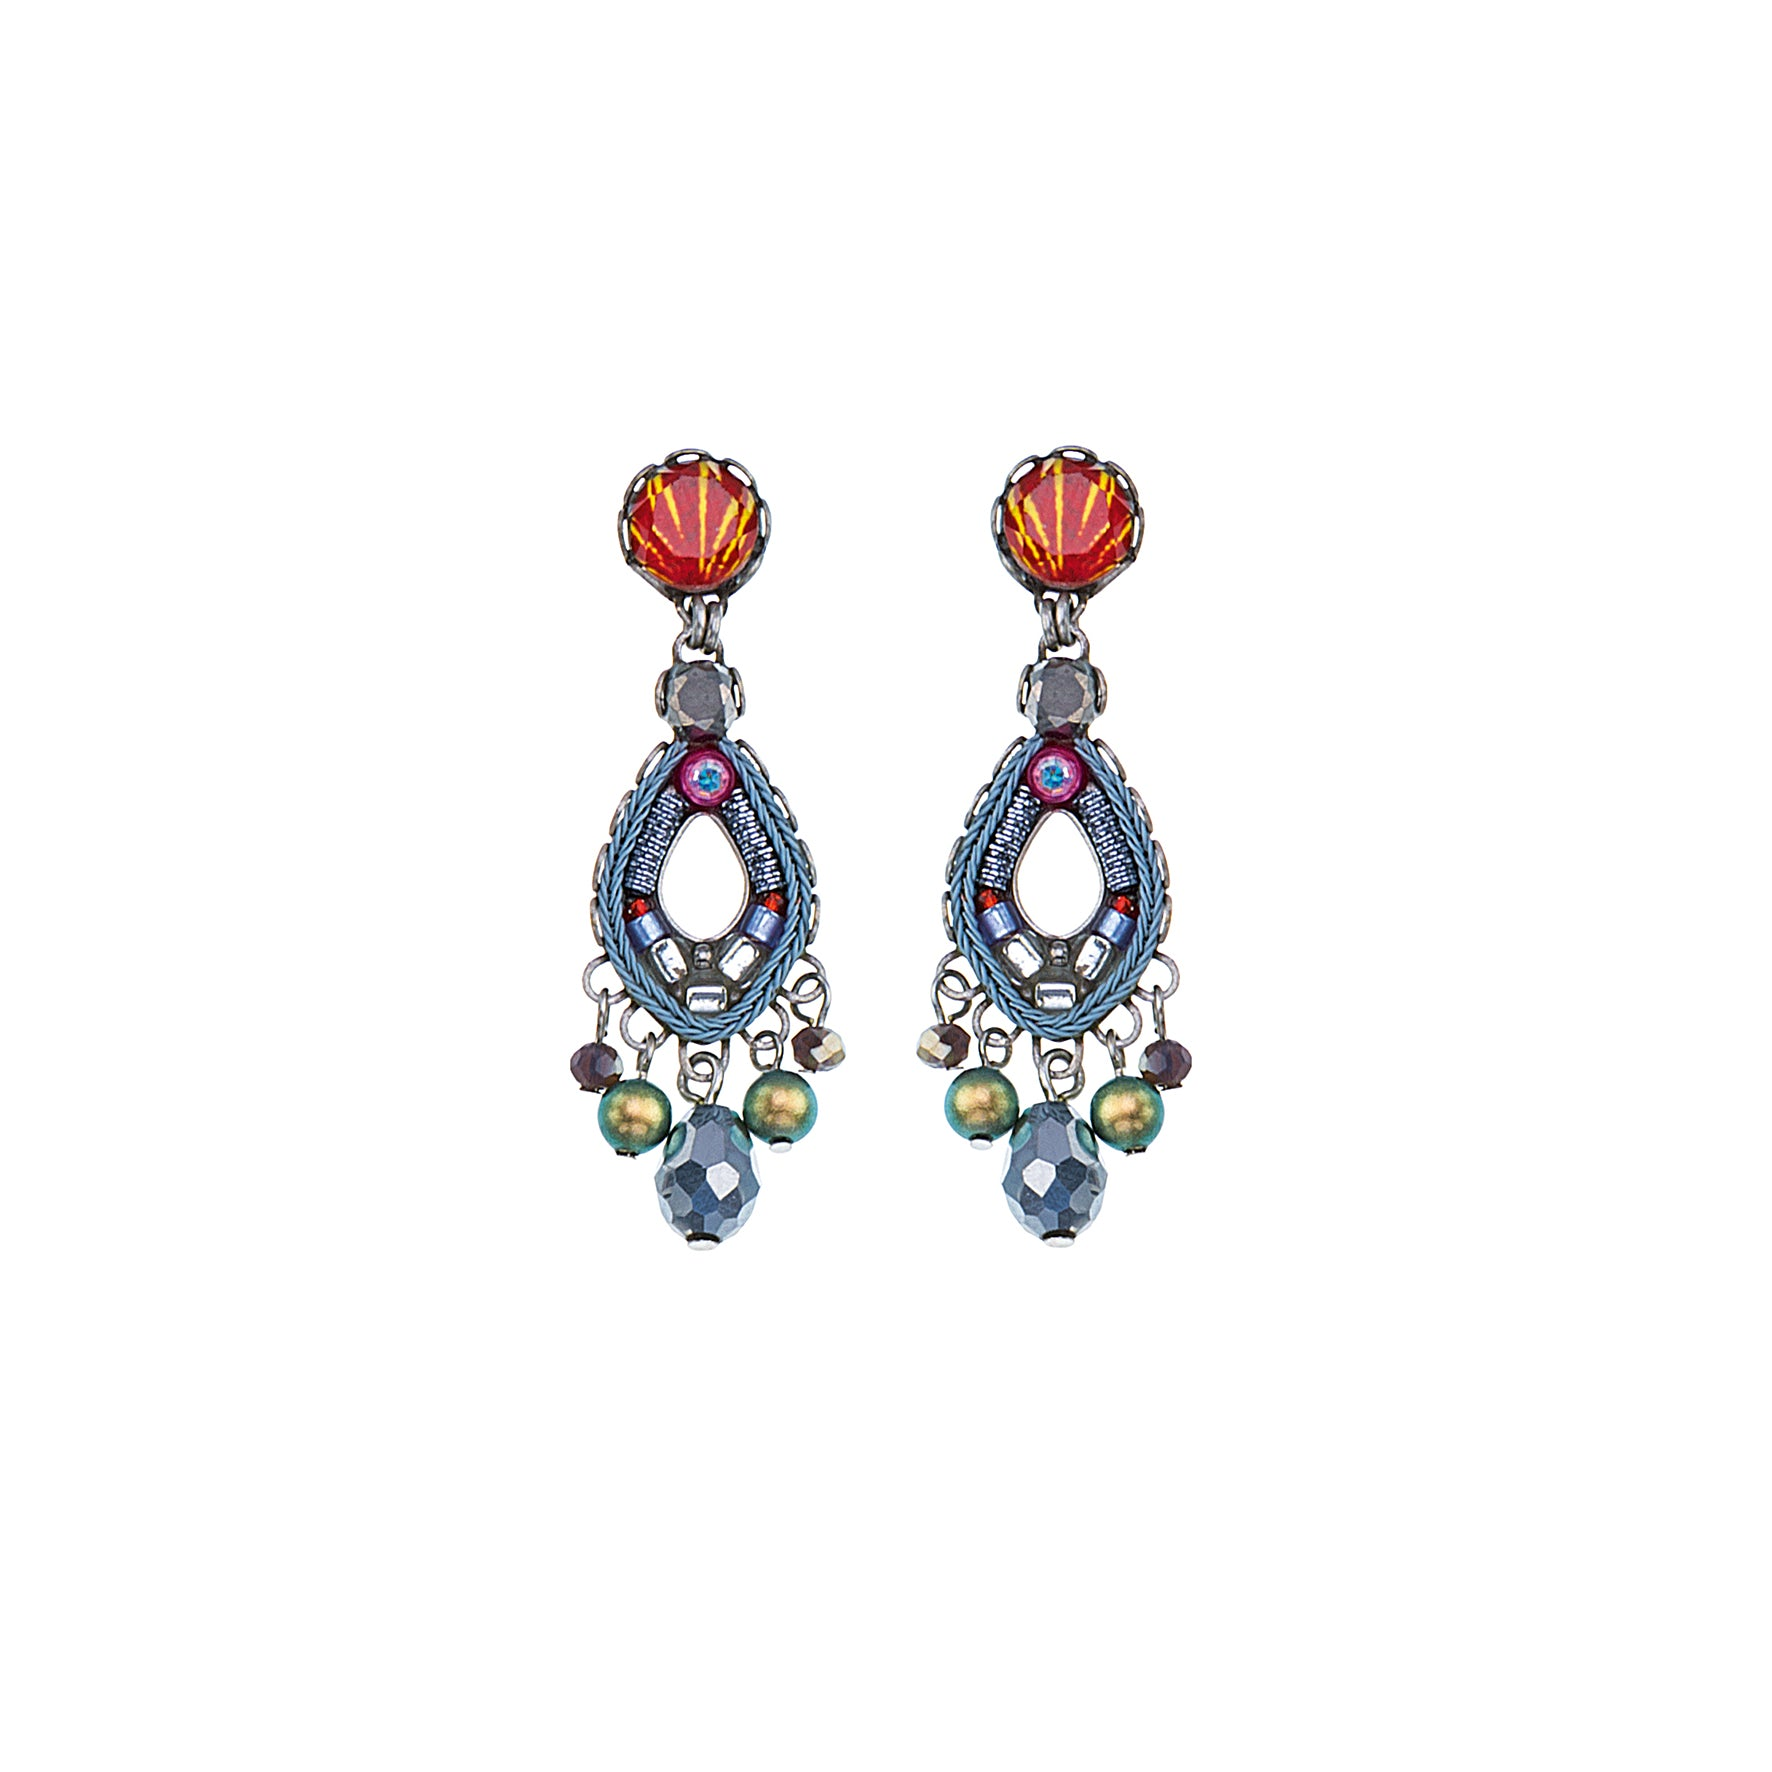 AYALABAR - CORAL REEF - MADISON EARRINGS